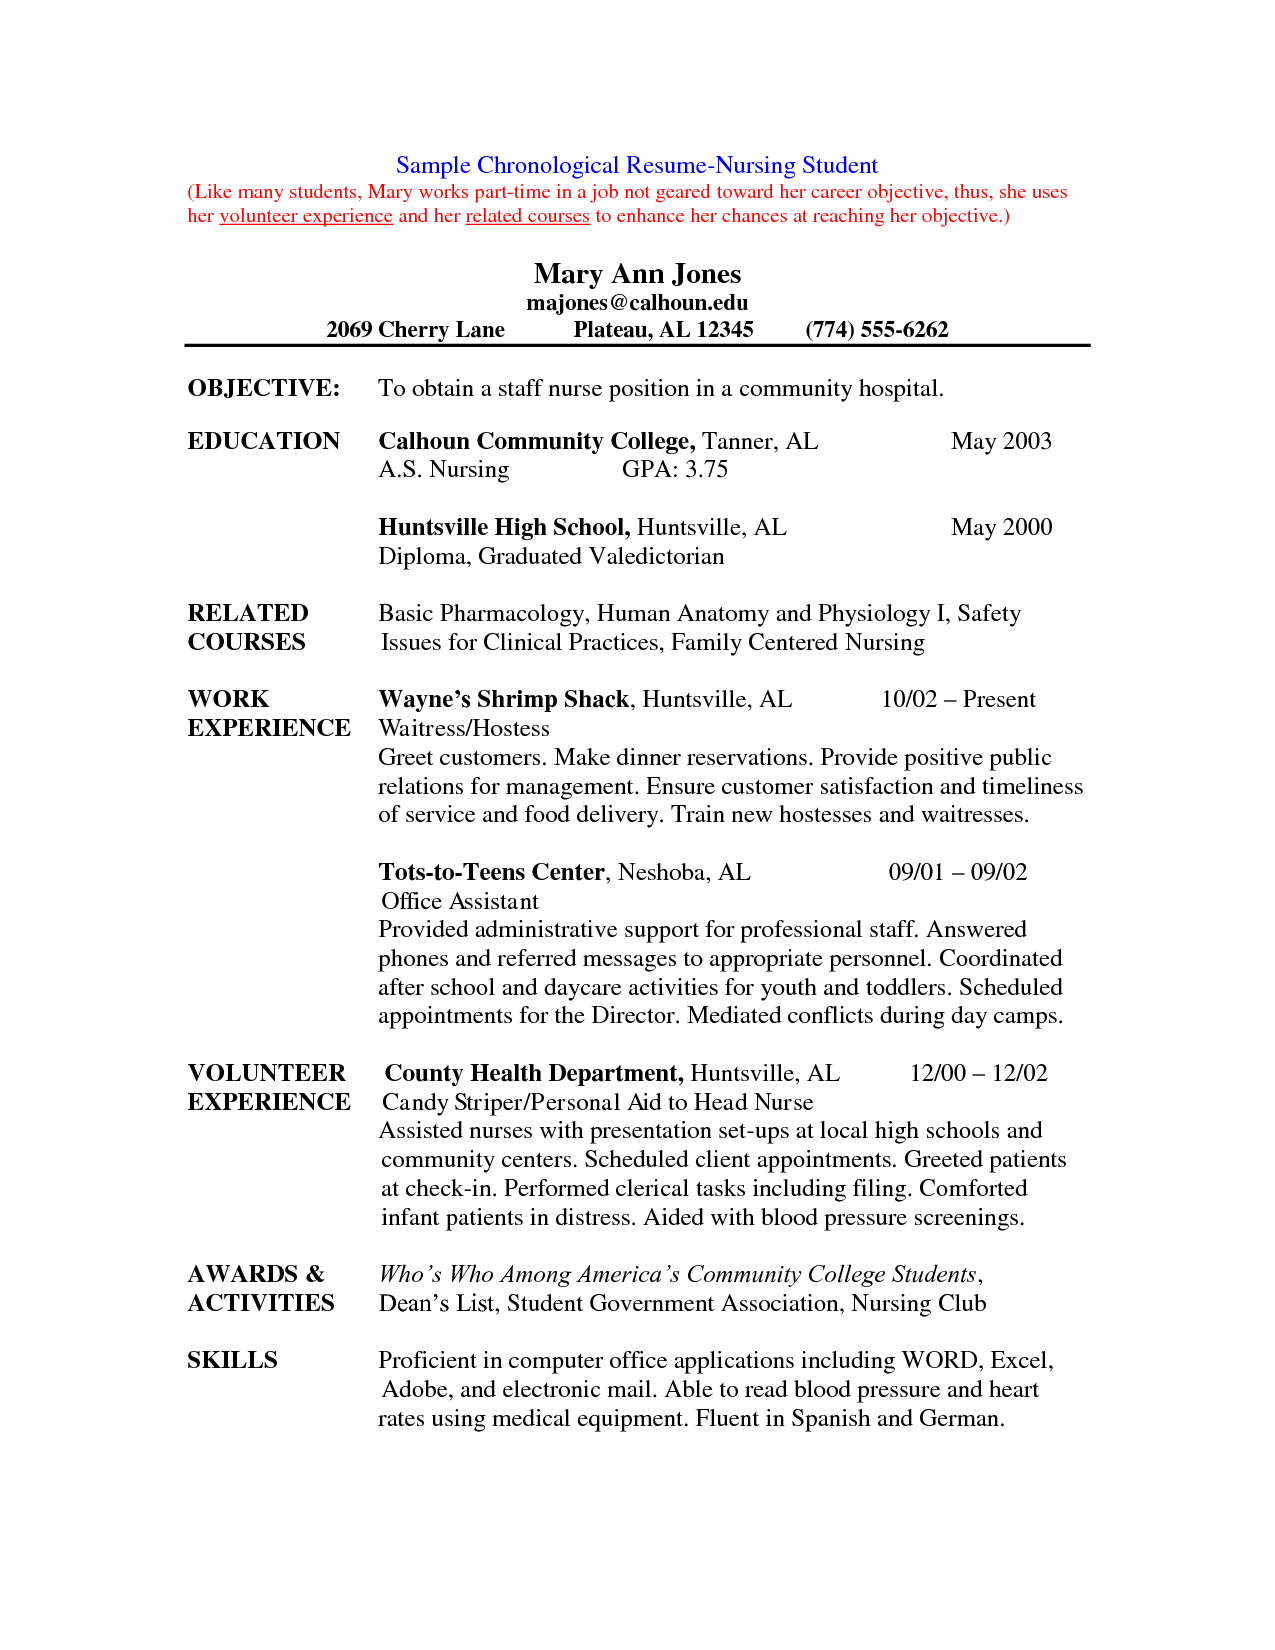 Nursing Student Resume Template HDResume Templates Cover Letter ...